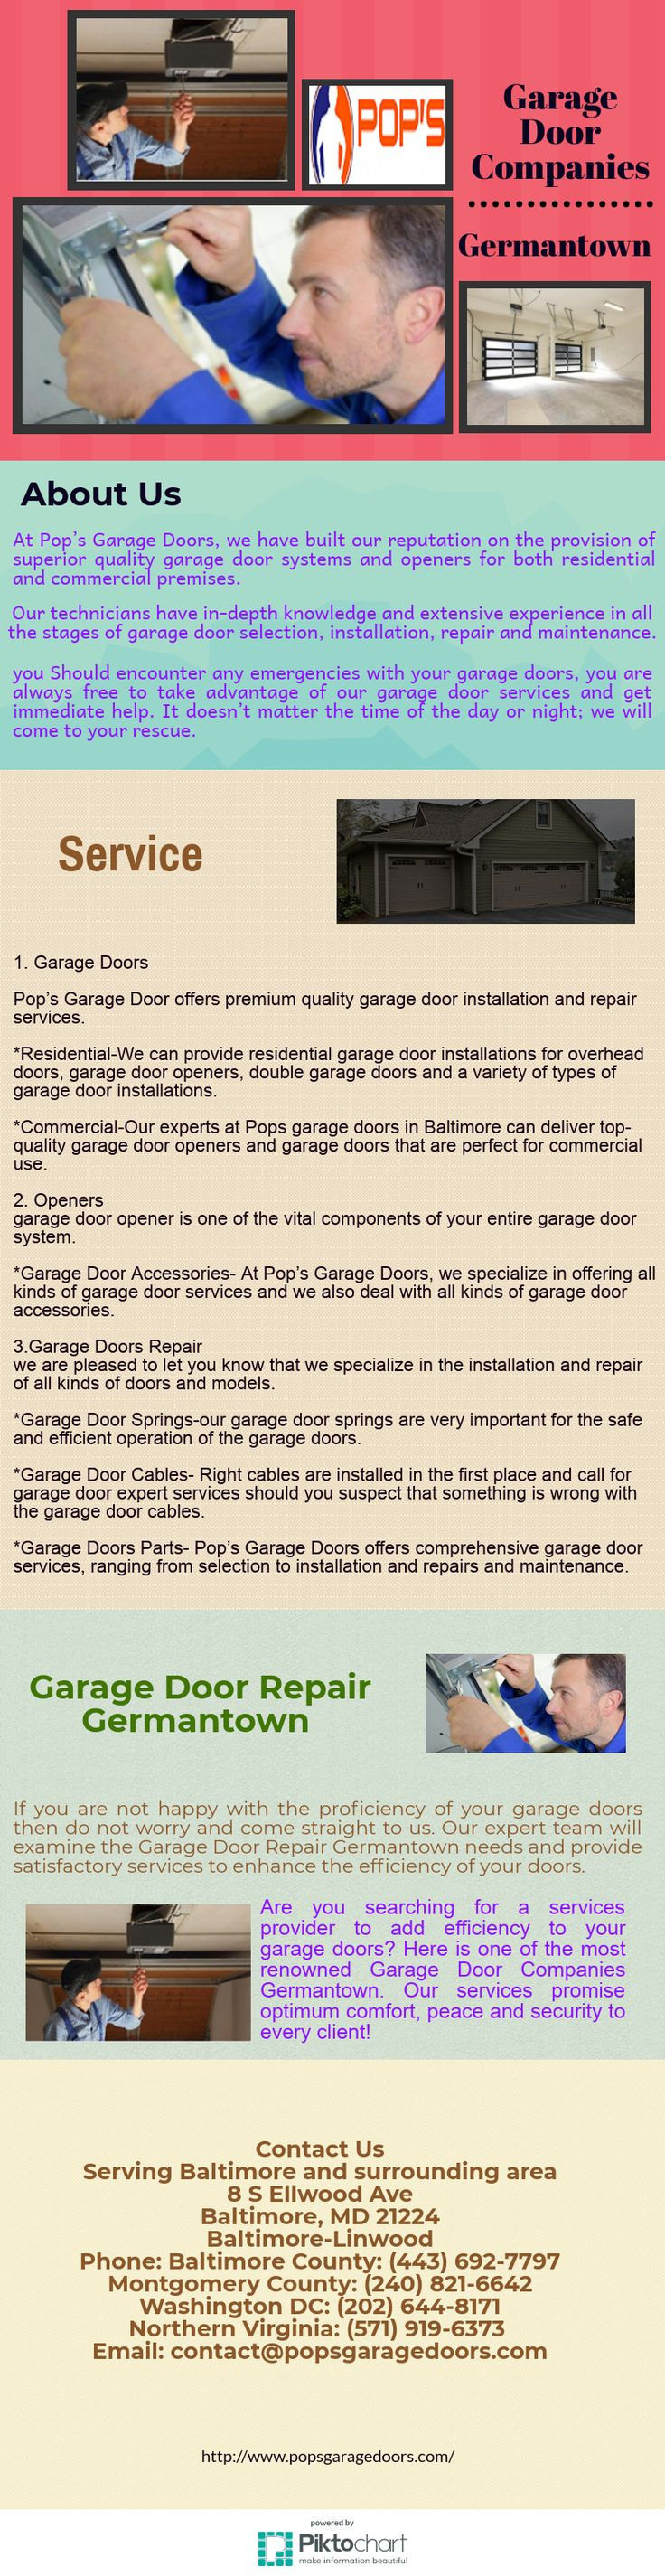 Are you searching for a services provider to add efficiency to your garage doors? Here is one of the most renowned Garage Door Companies Germantown. Our services promise optimum comfort, peace and security to every client!